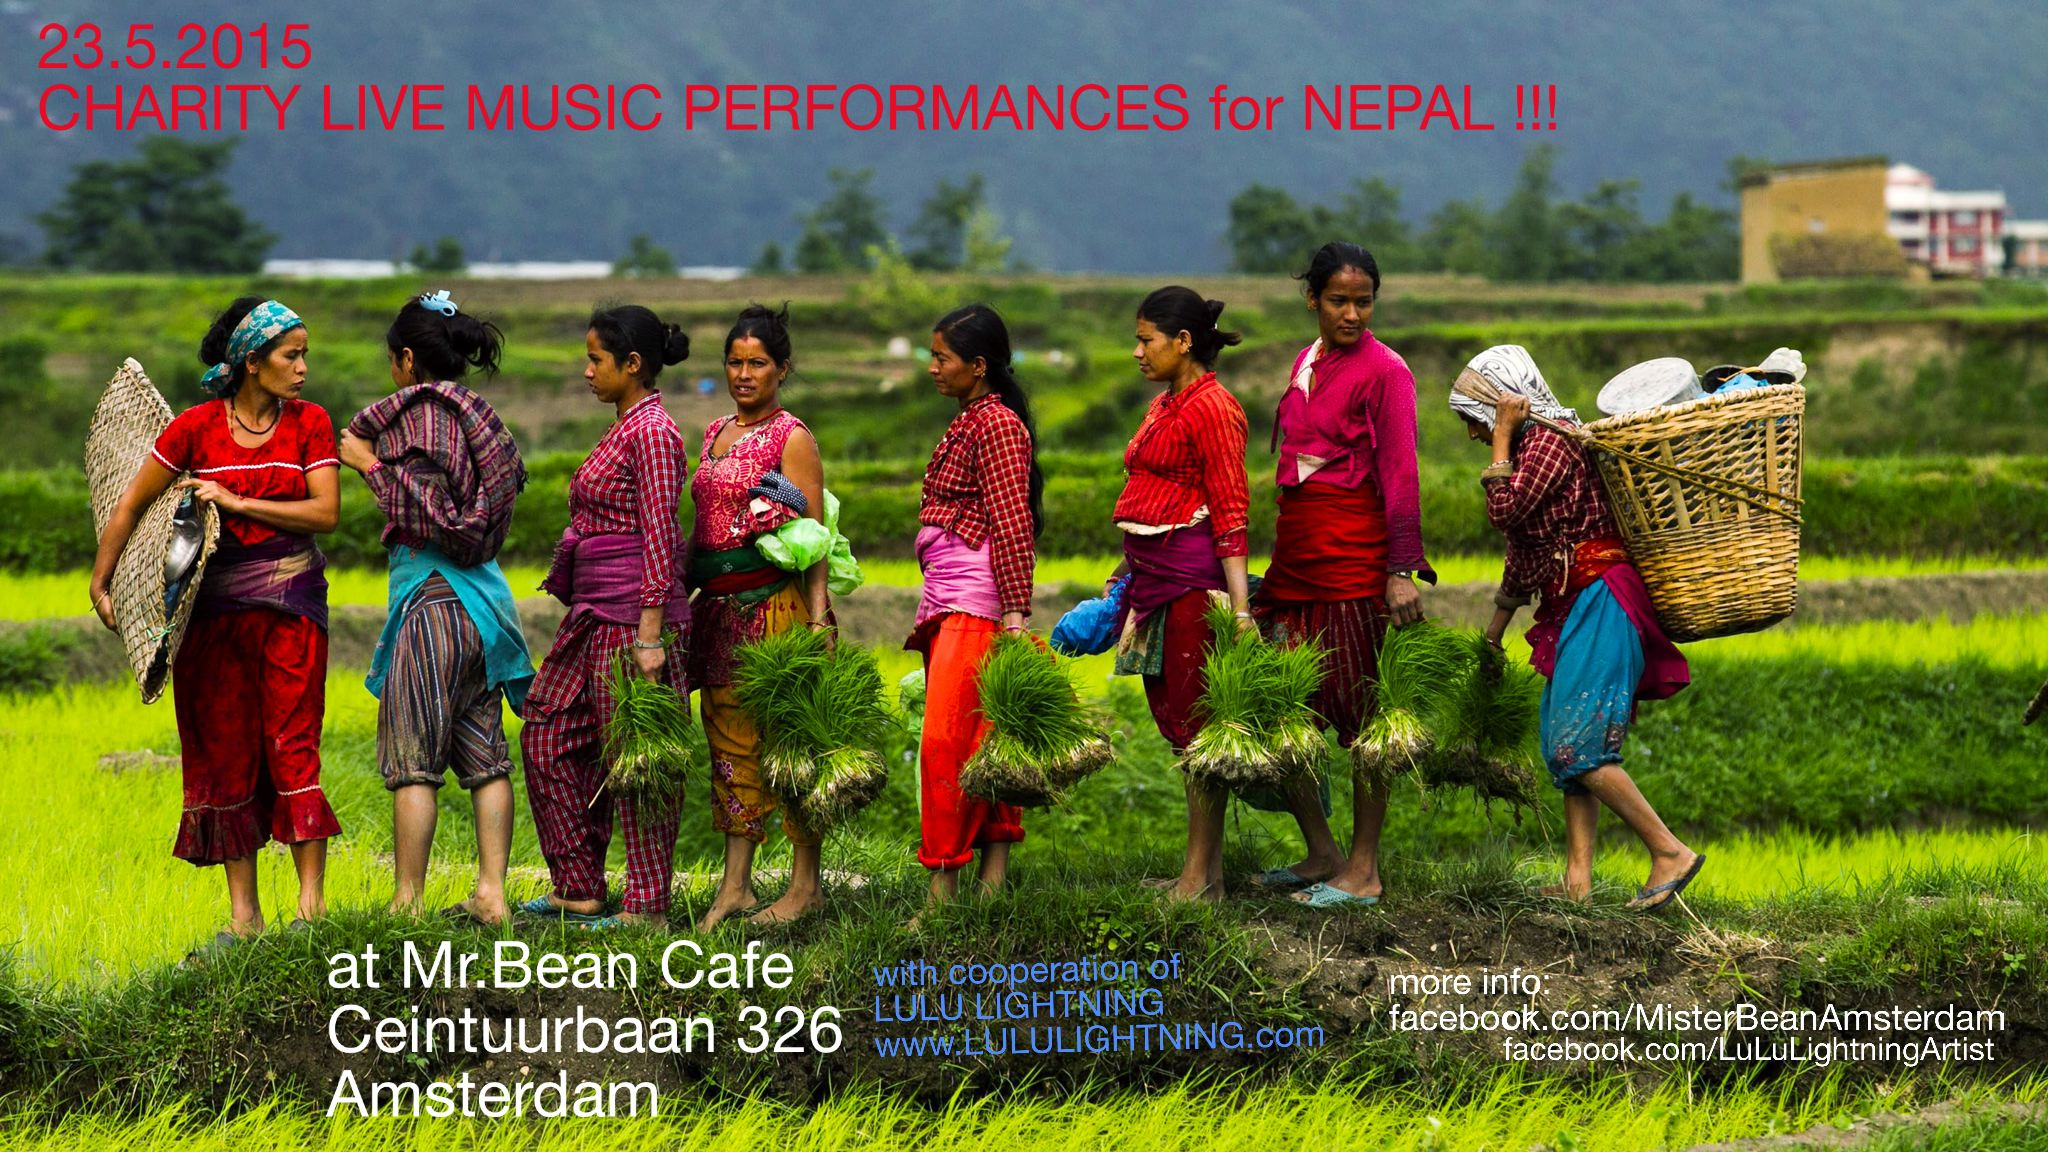 CHARITY FOR NEPAL AMSTERDAM - MUSIC EVENT